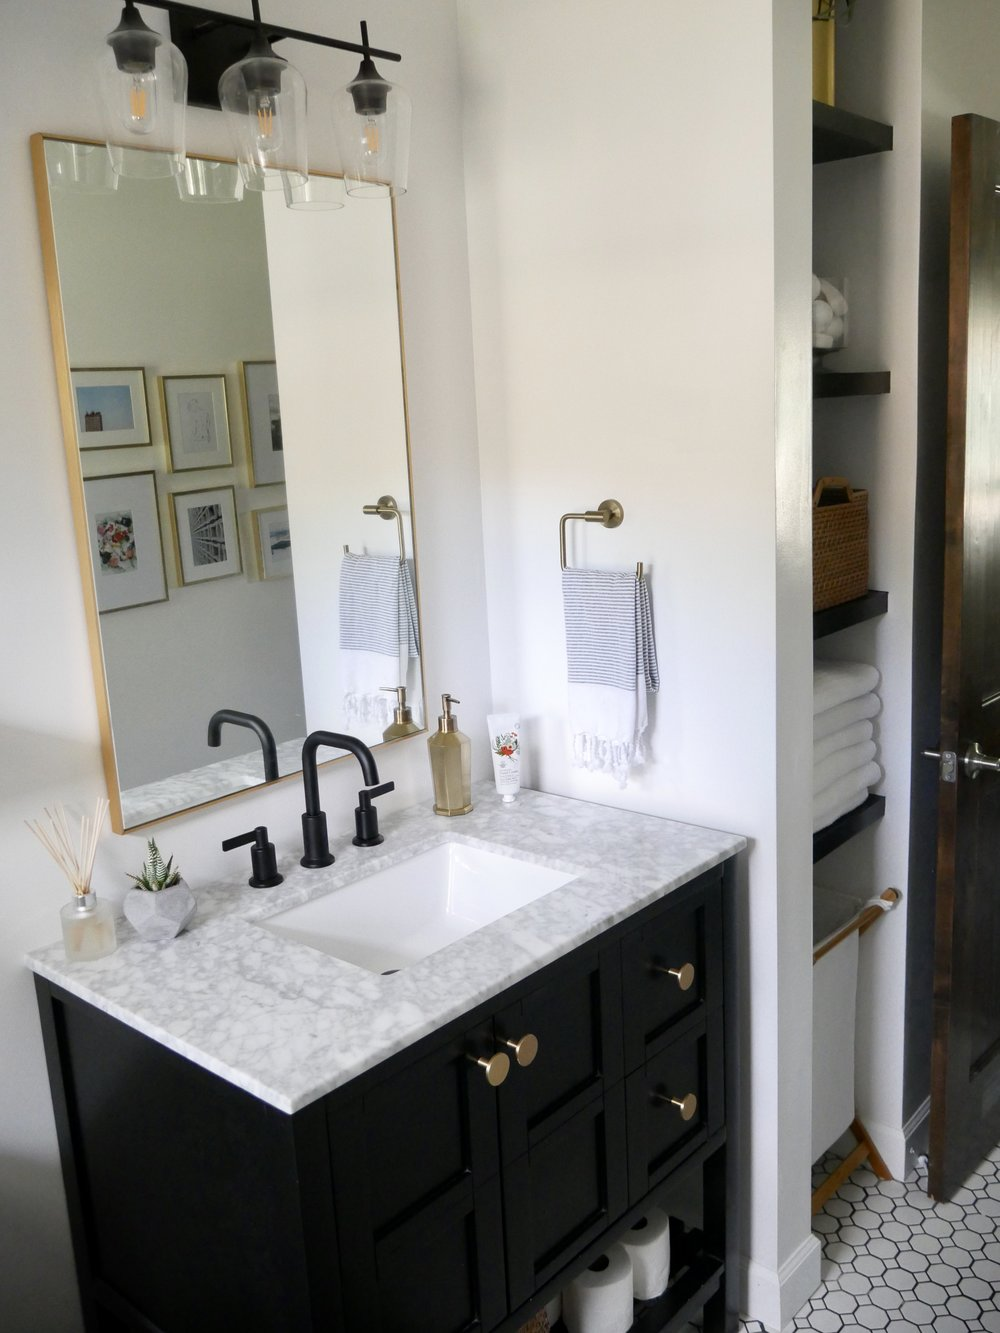 Our Fifties Fixer Upper: Hallway Bathroom